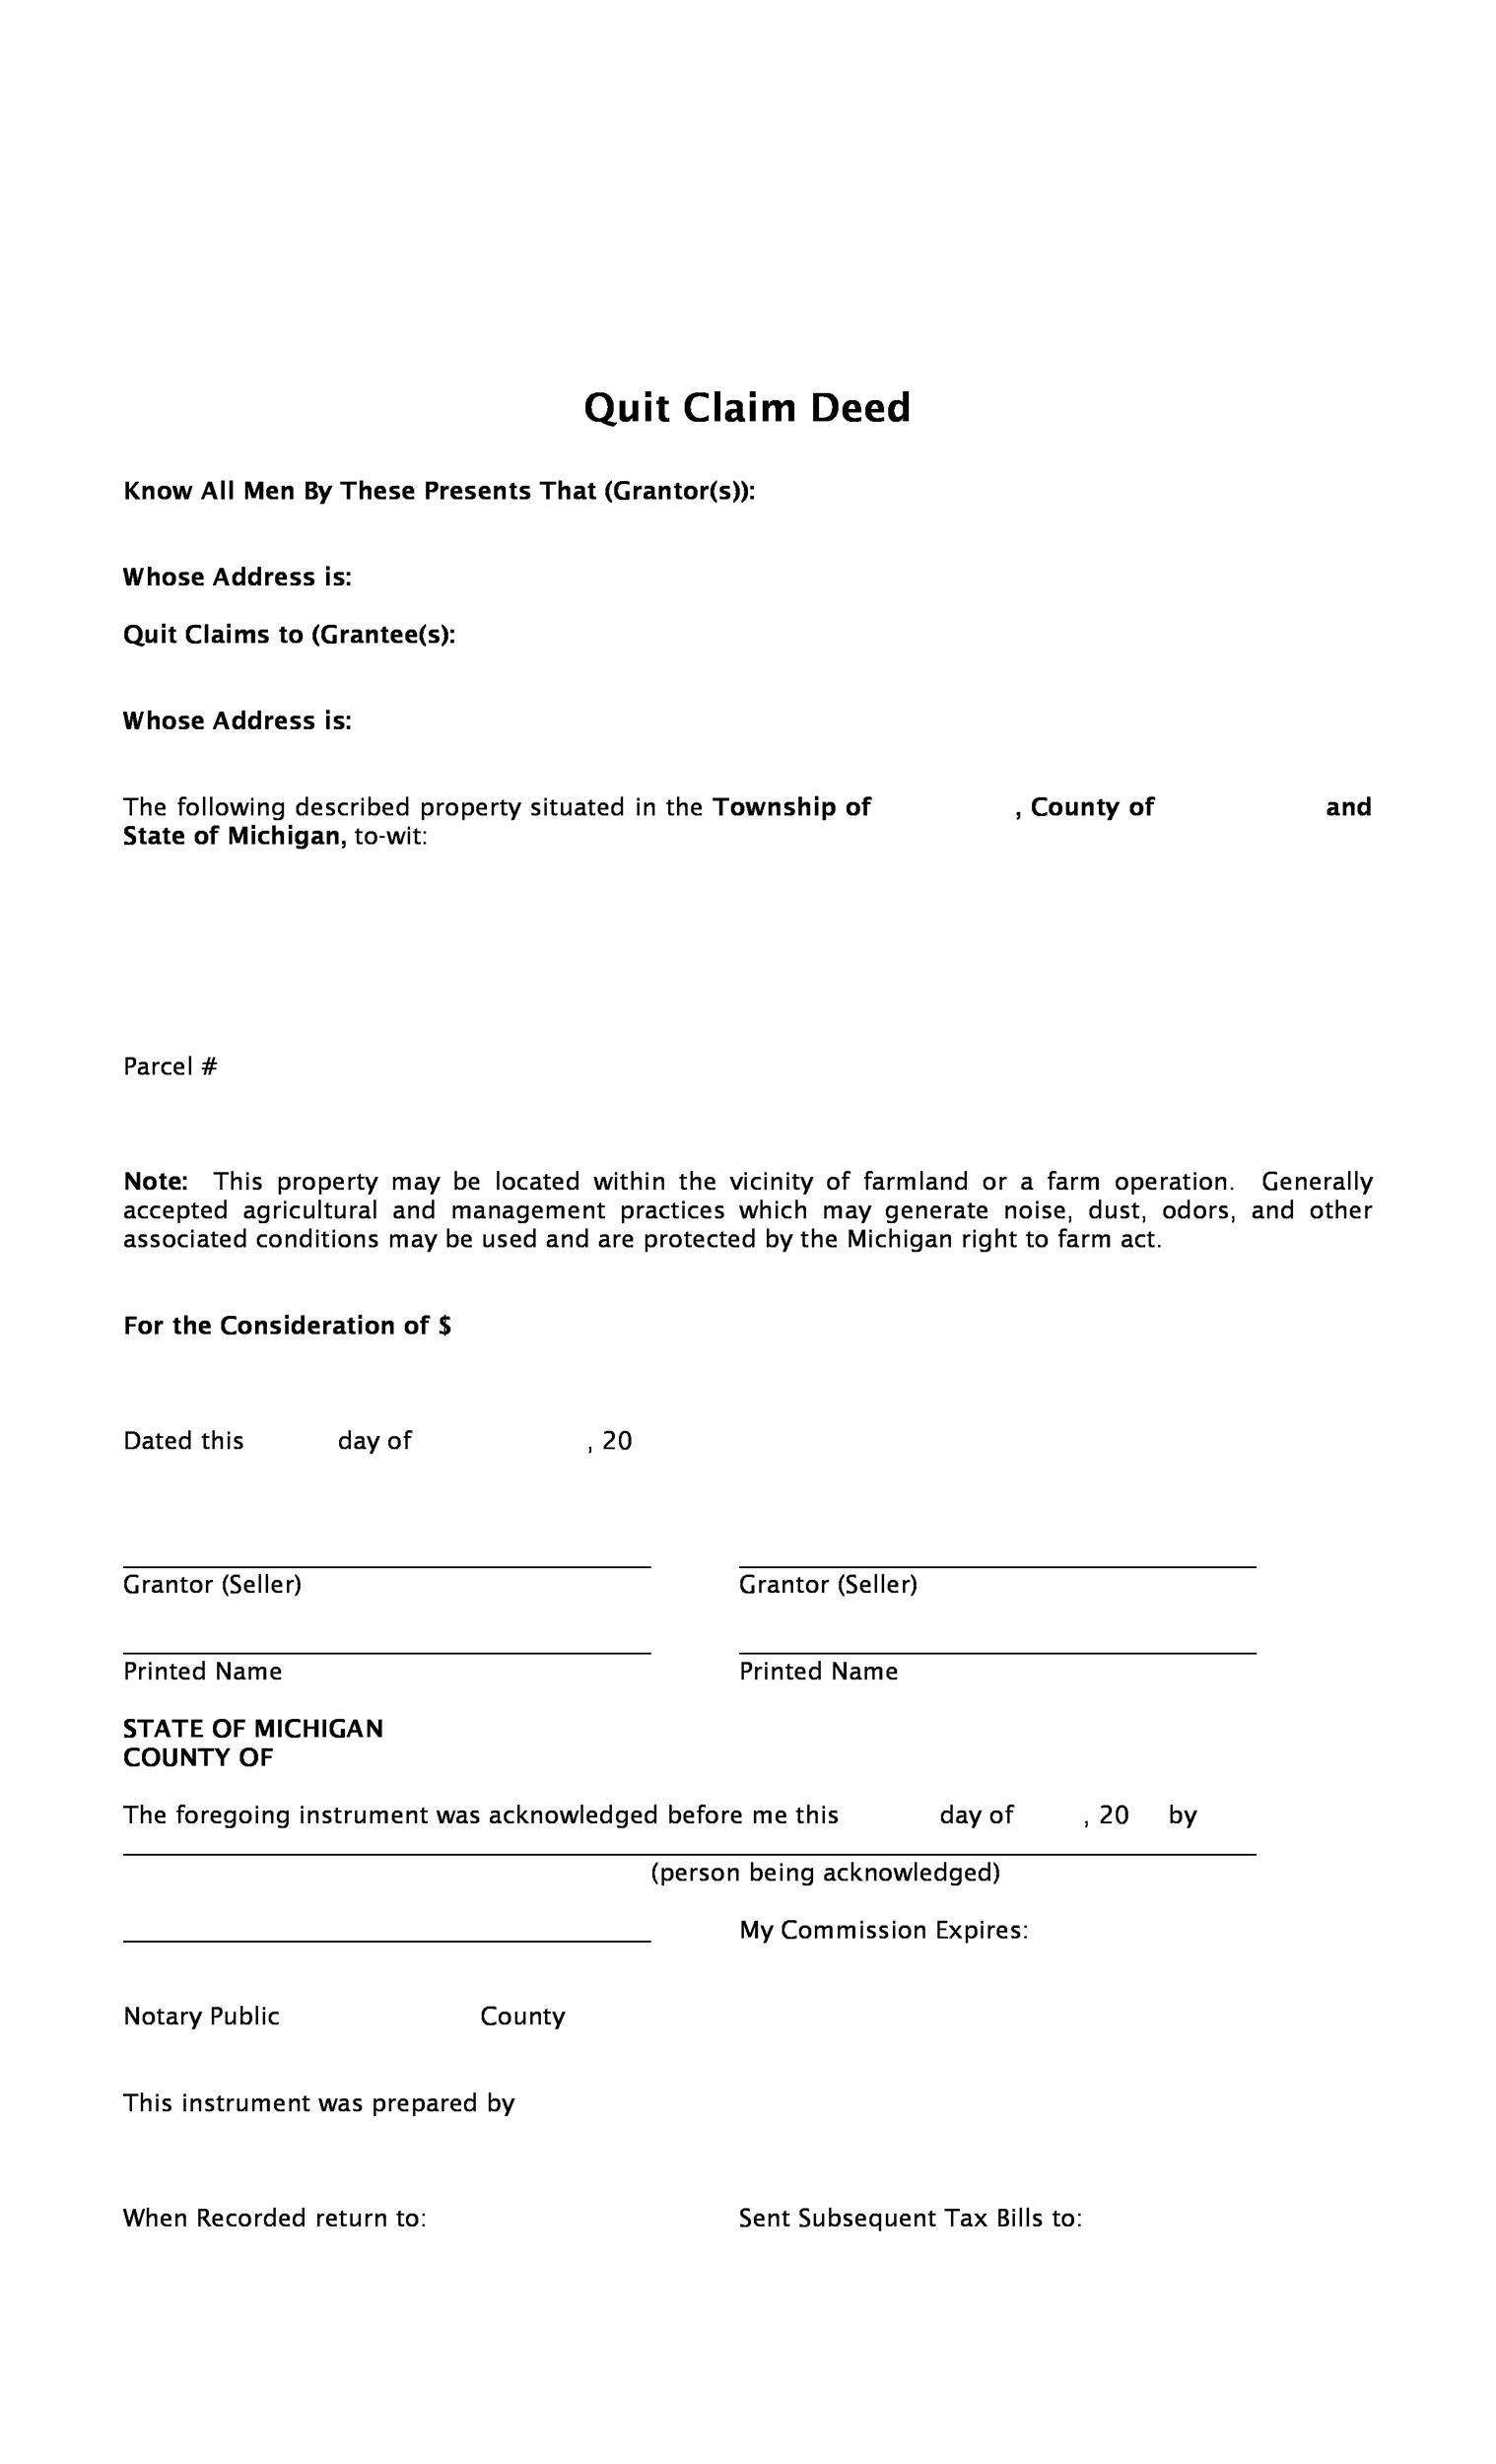 Free Quit Claim Deed Template 02